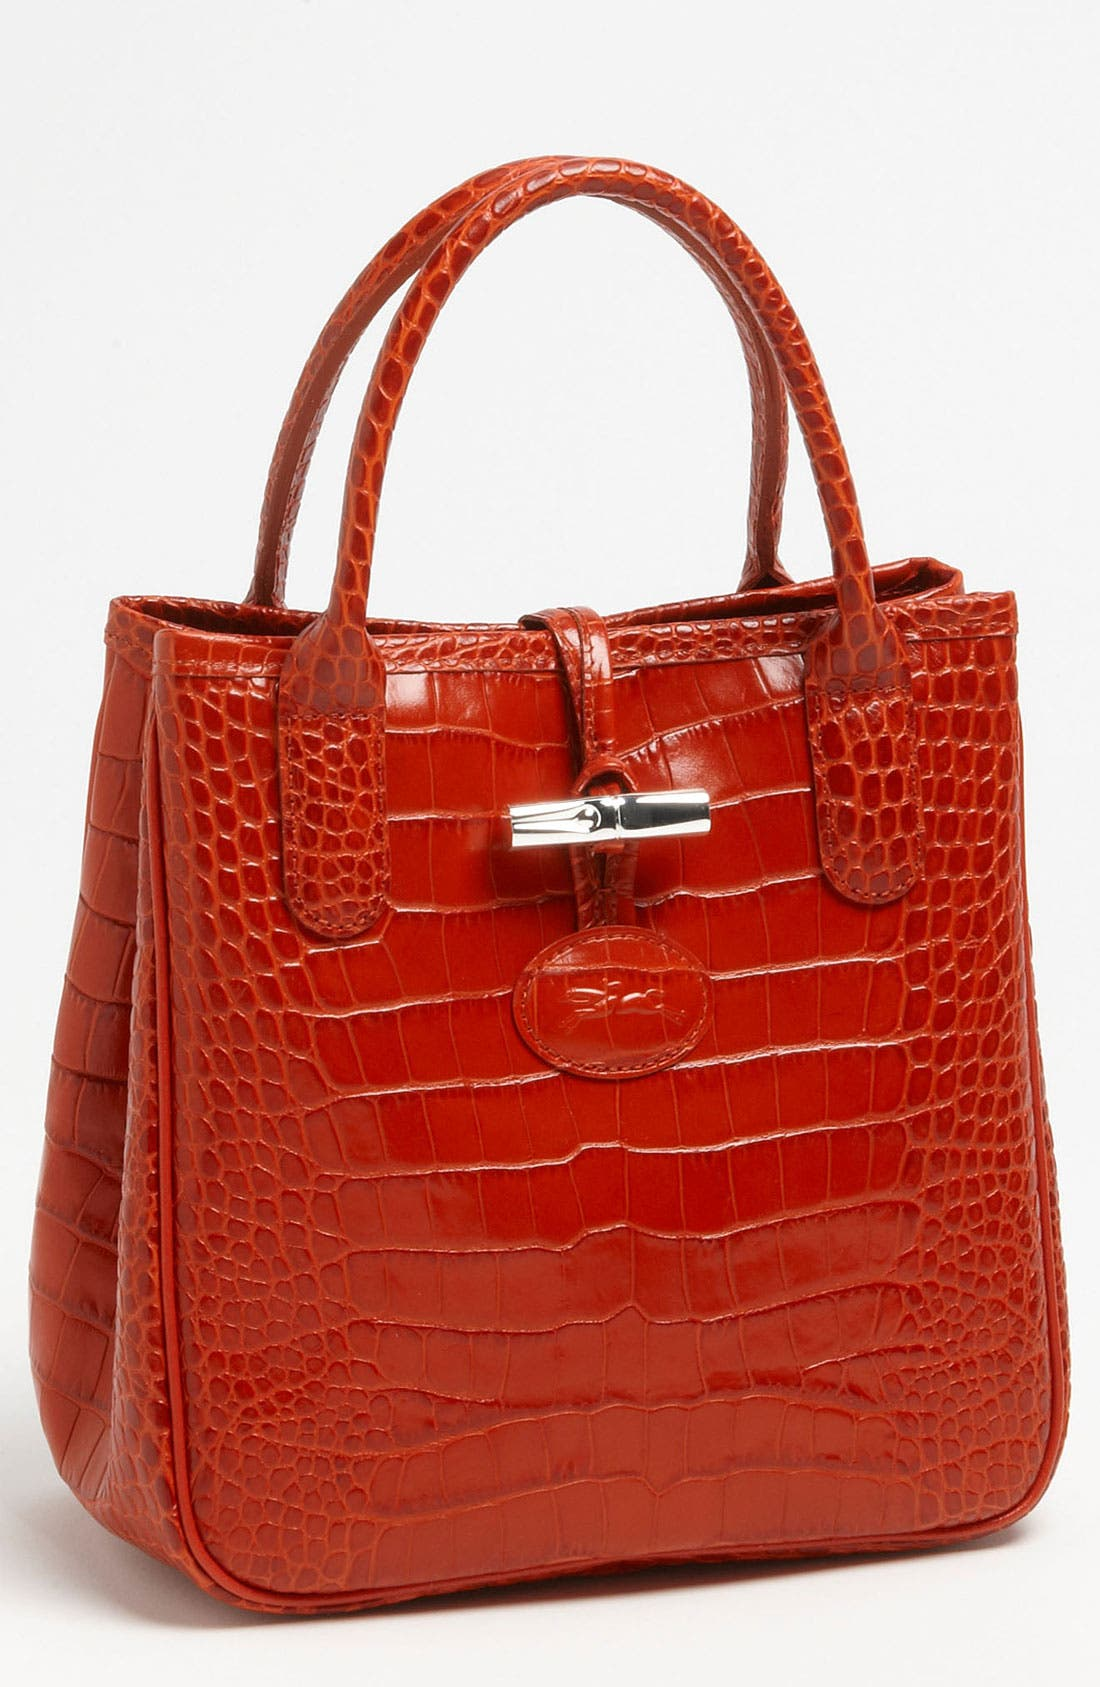 Alternate Image 1 Selected - Longchamp 'Roseau' Croc Embossed Tote